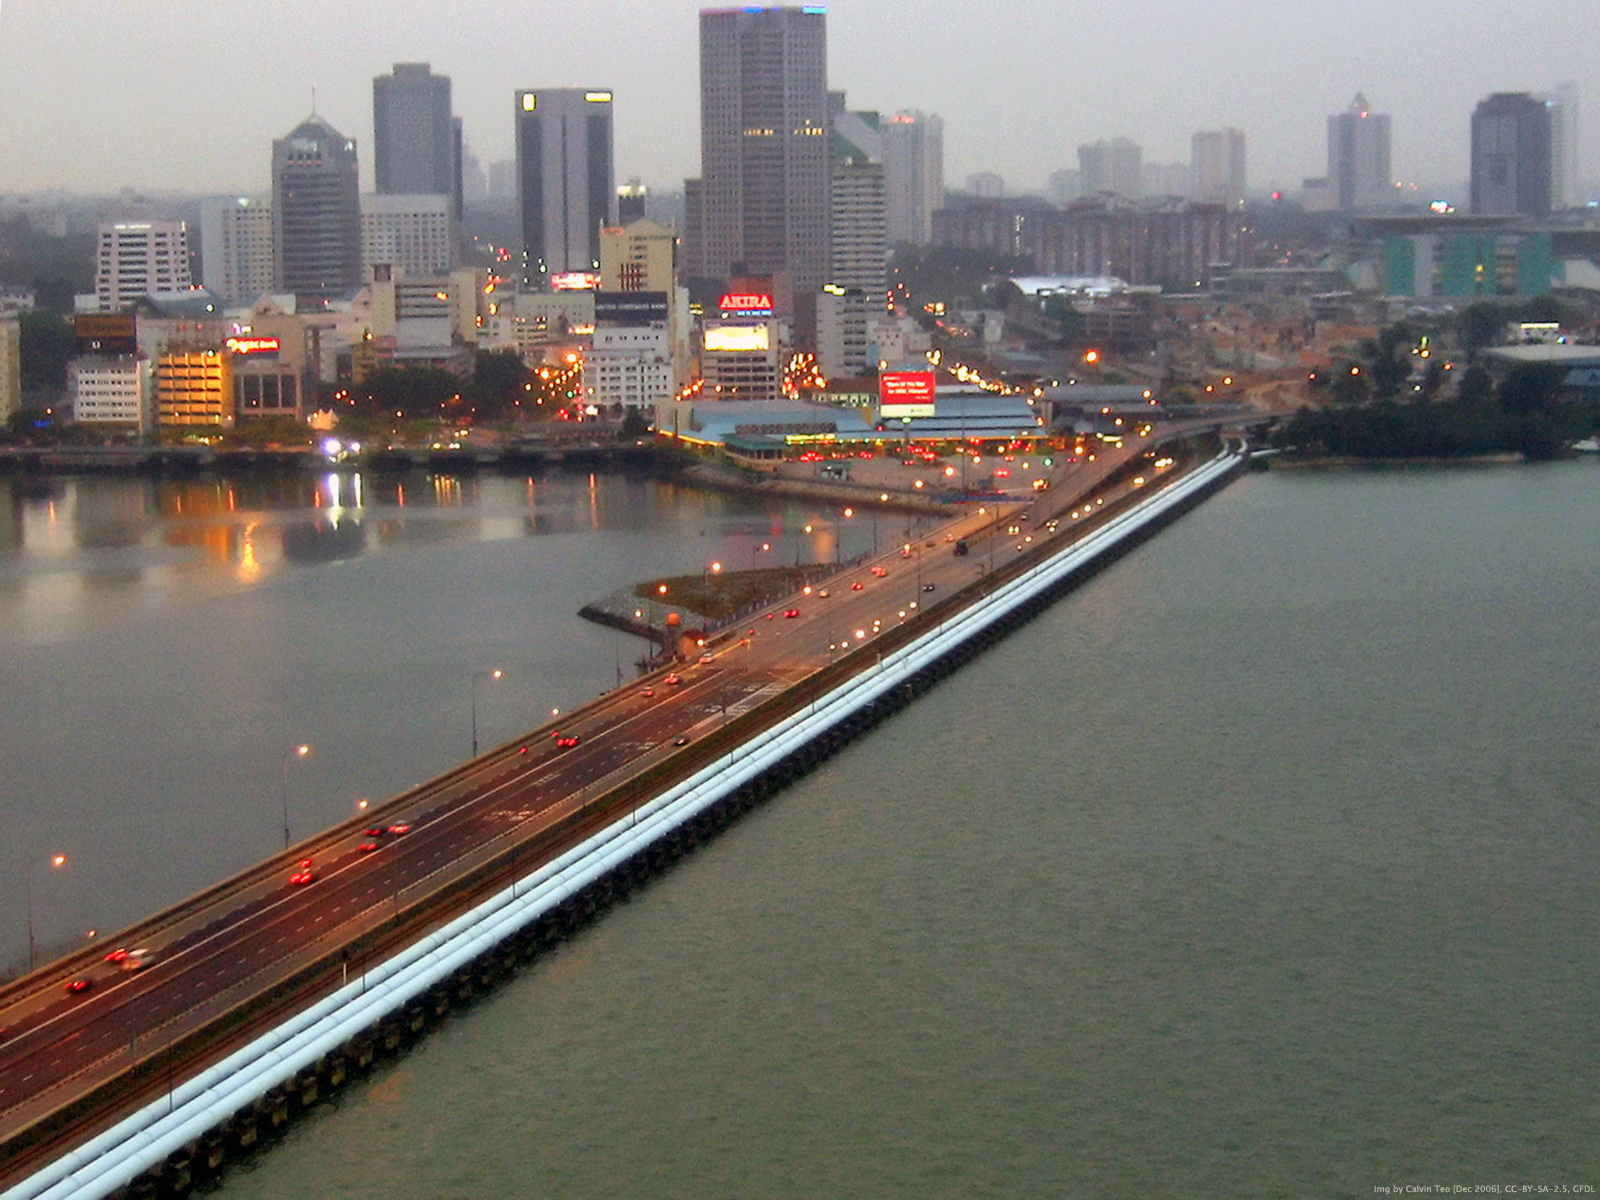 http://upload.wikimedia.org/wikipedia/commons/7/76/Singapore-Johor_Causeway.jpg